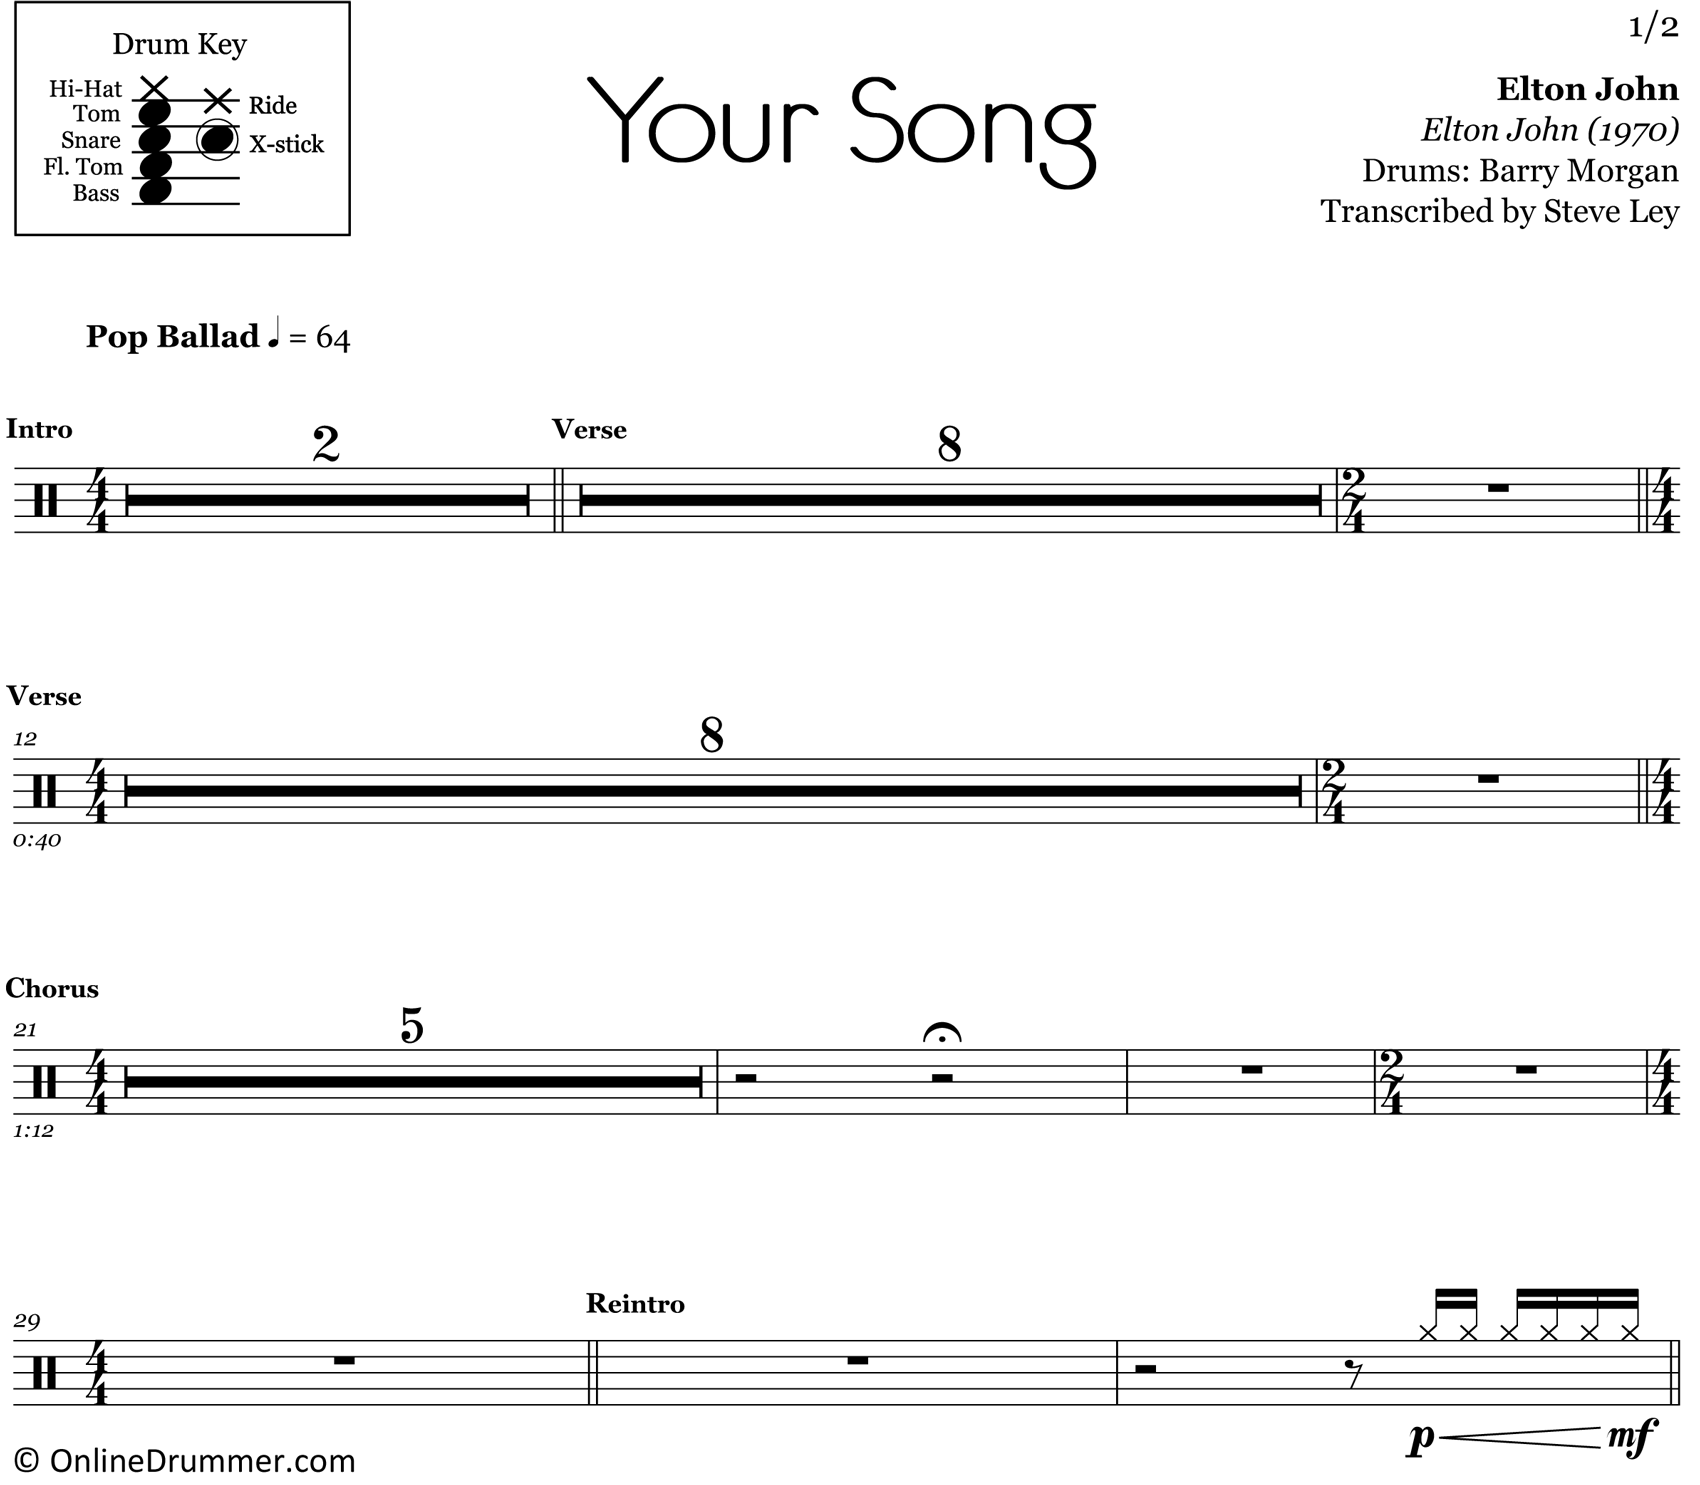 Your Song - Elton John - Drum Sheet Music